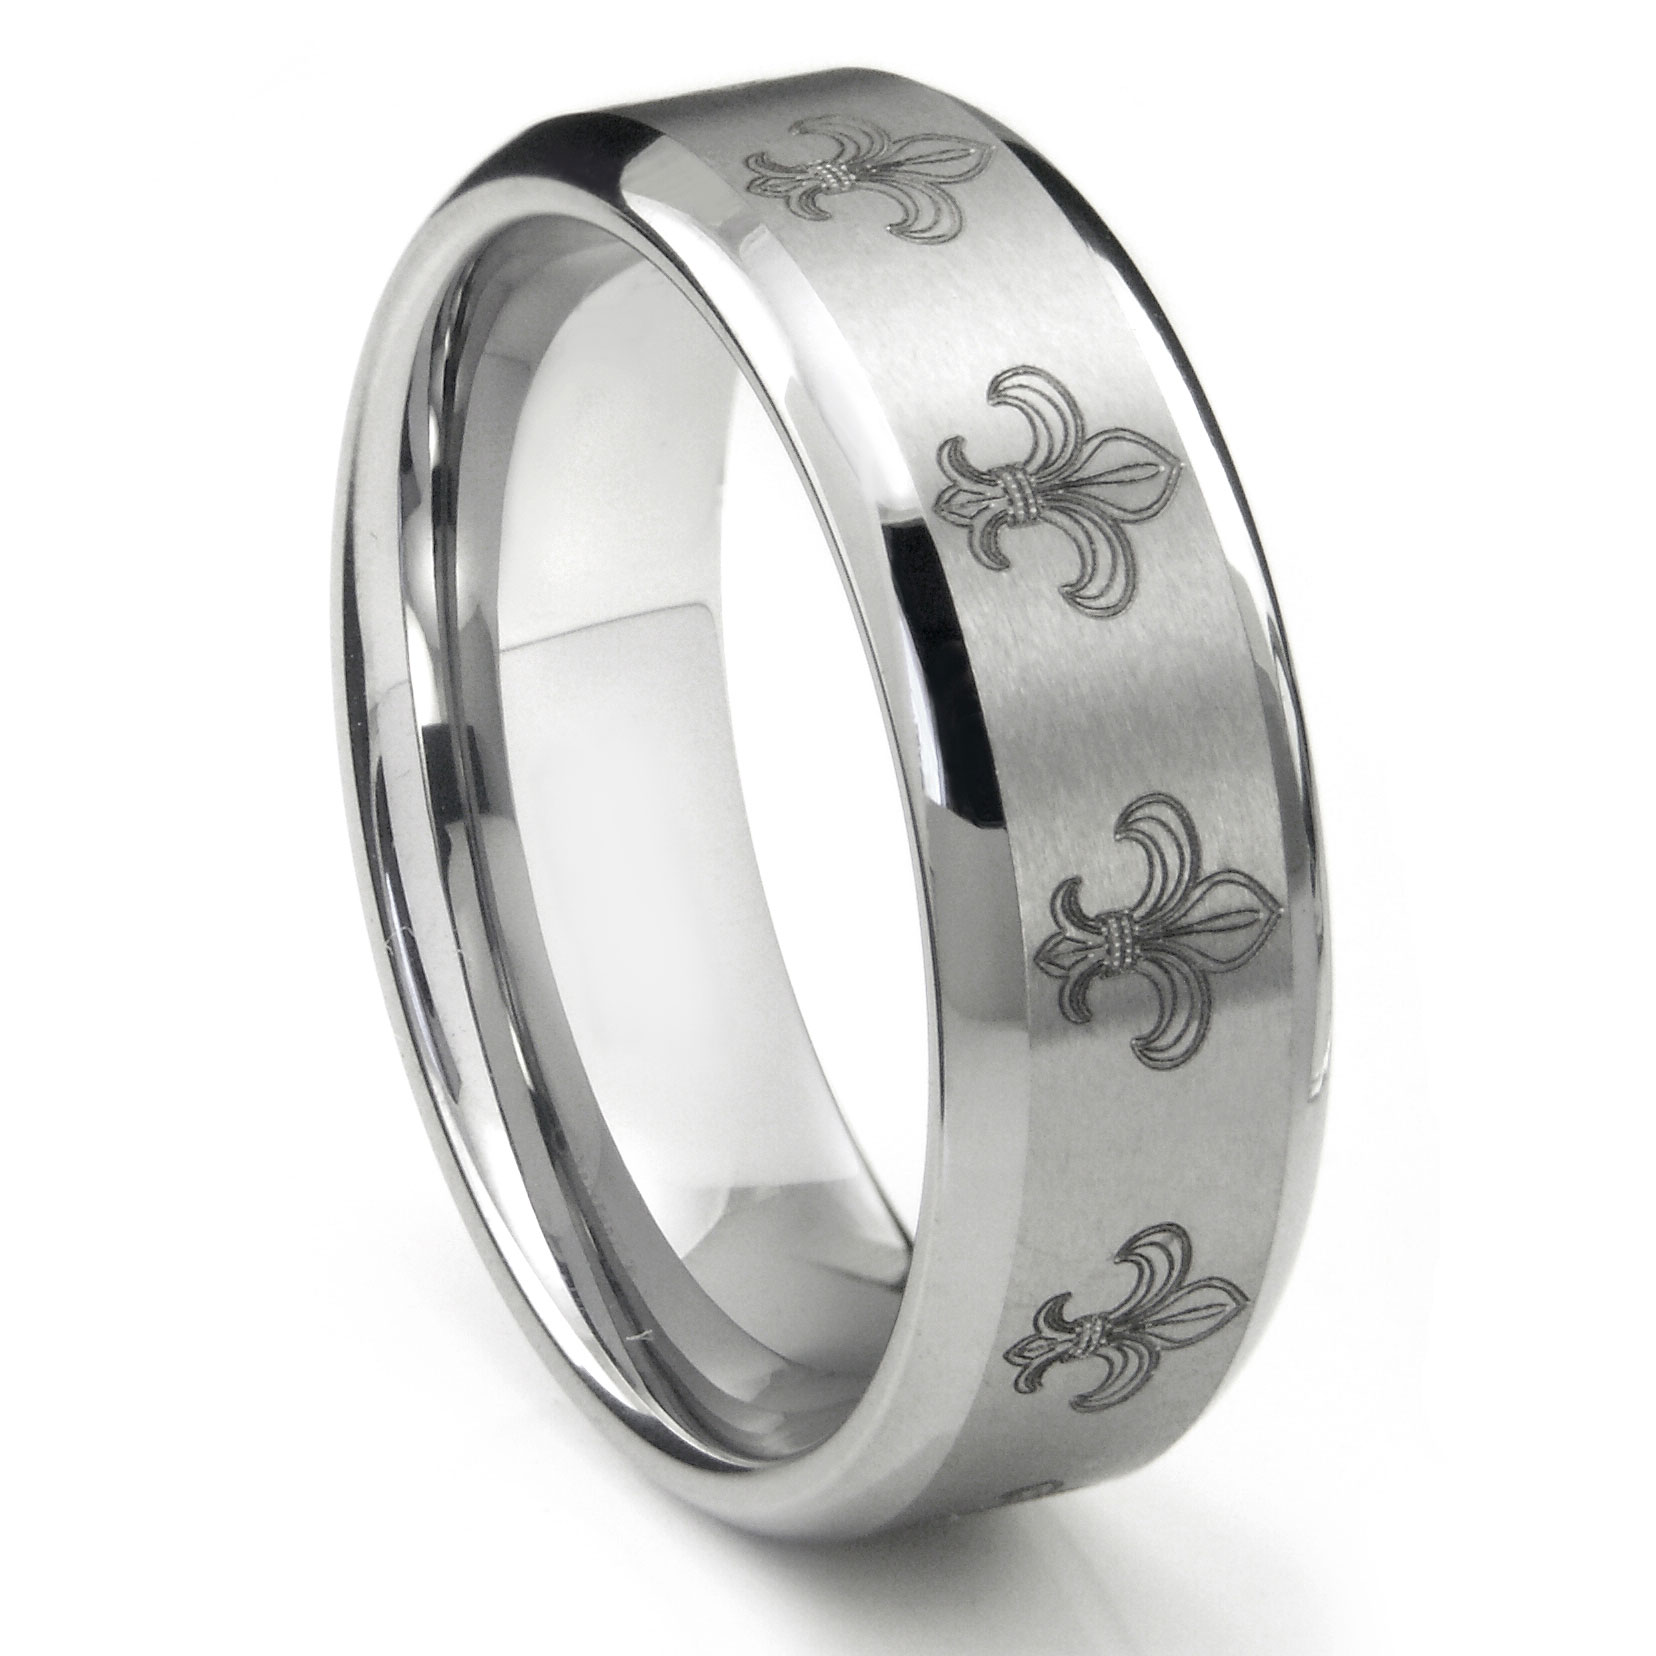 sterling fashion jewelry wholesale saints silver designer product handmade vintage women open men direct and weaving charms china rings presents from lovejewels